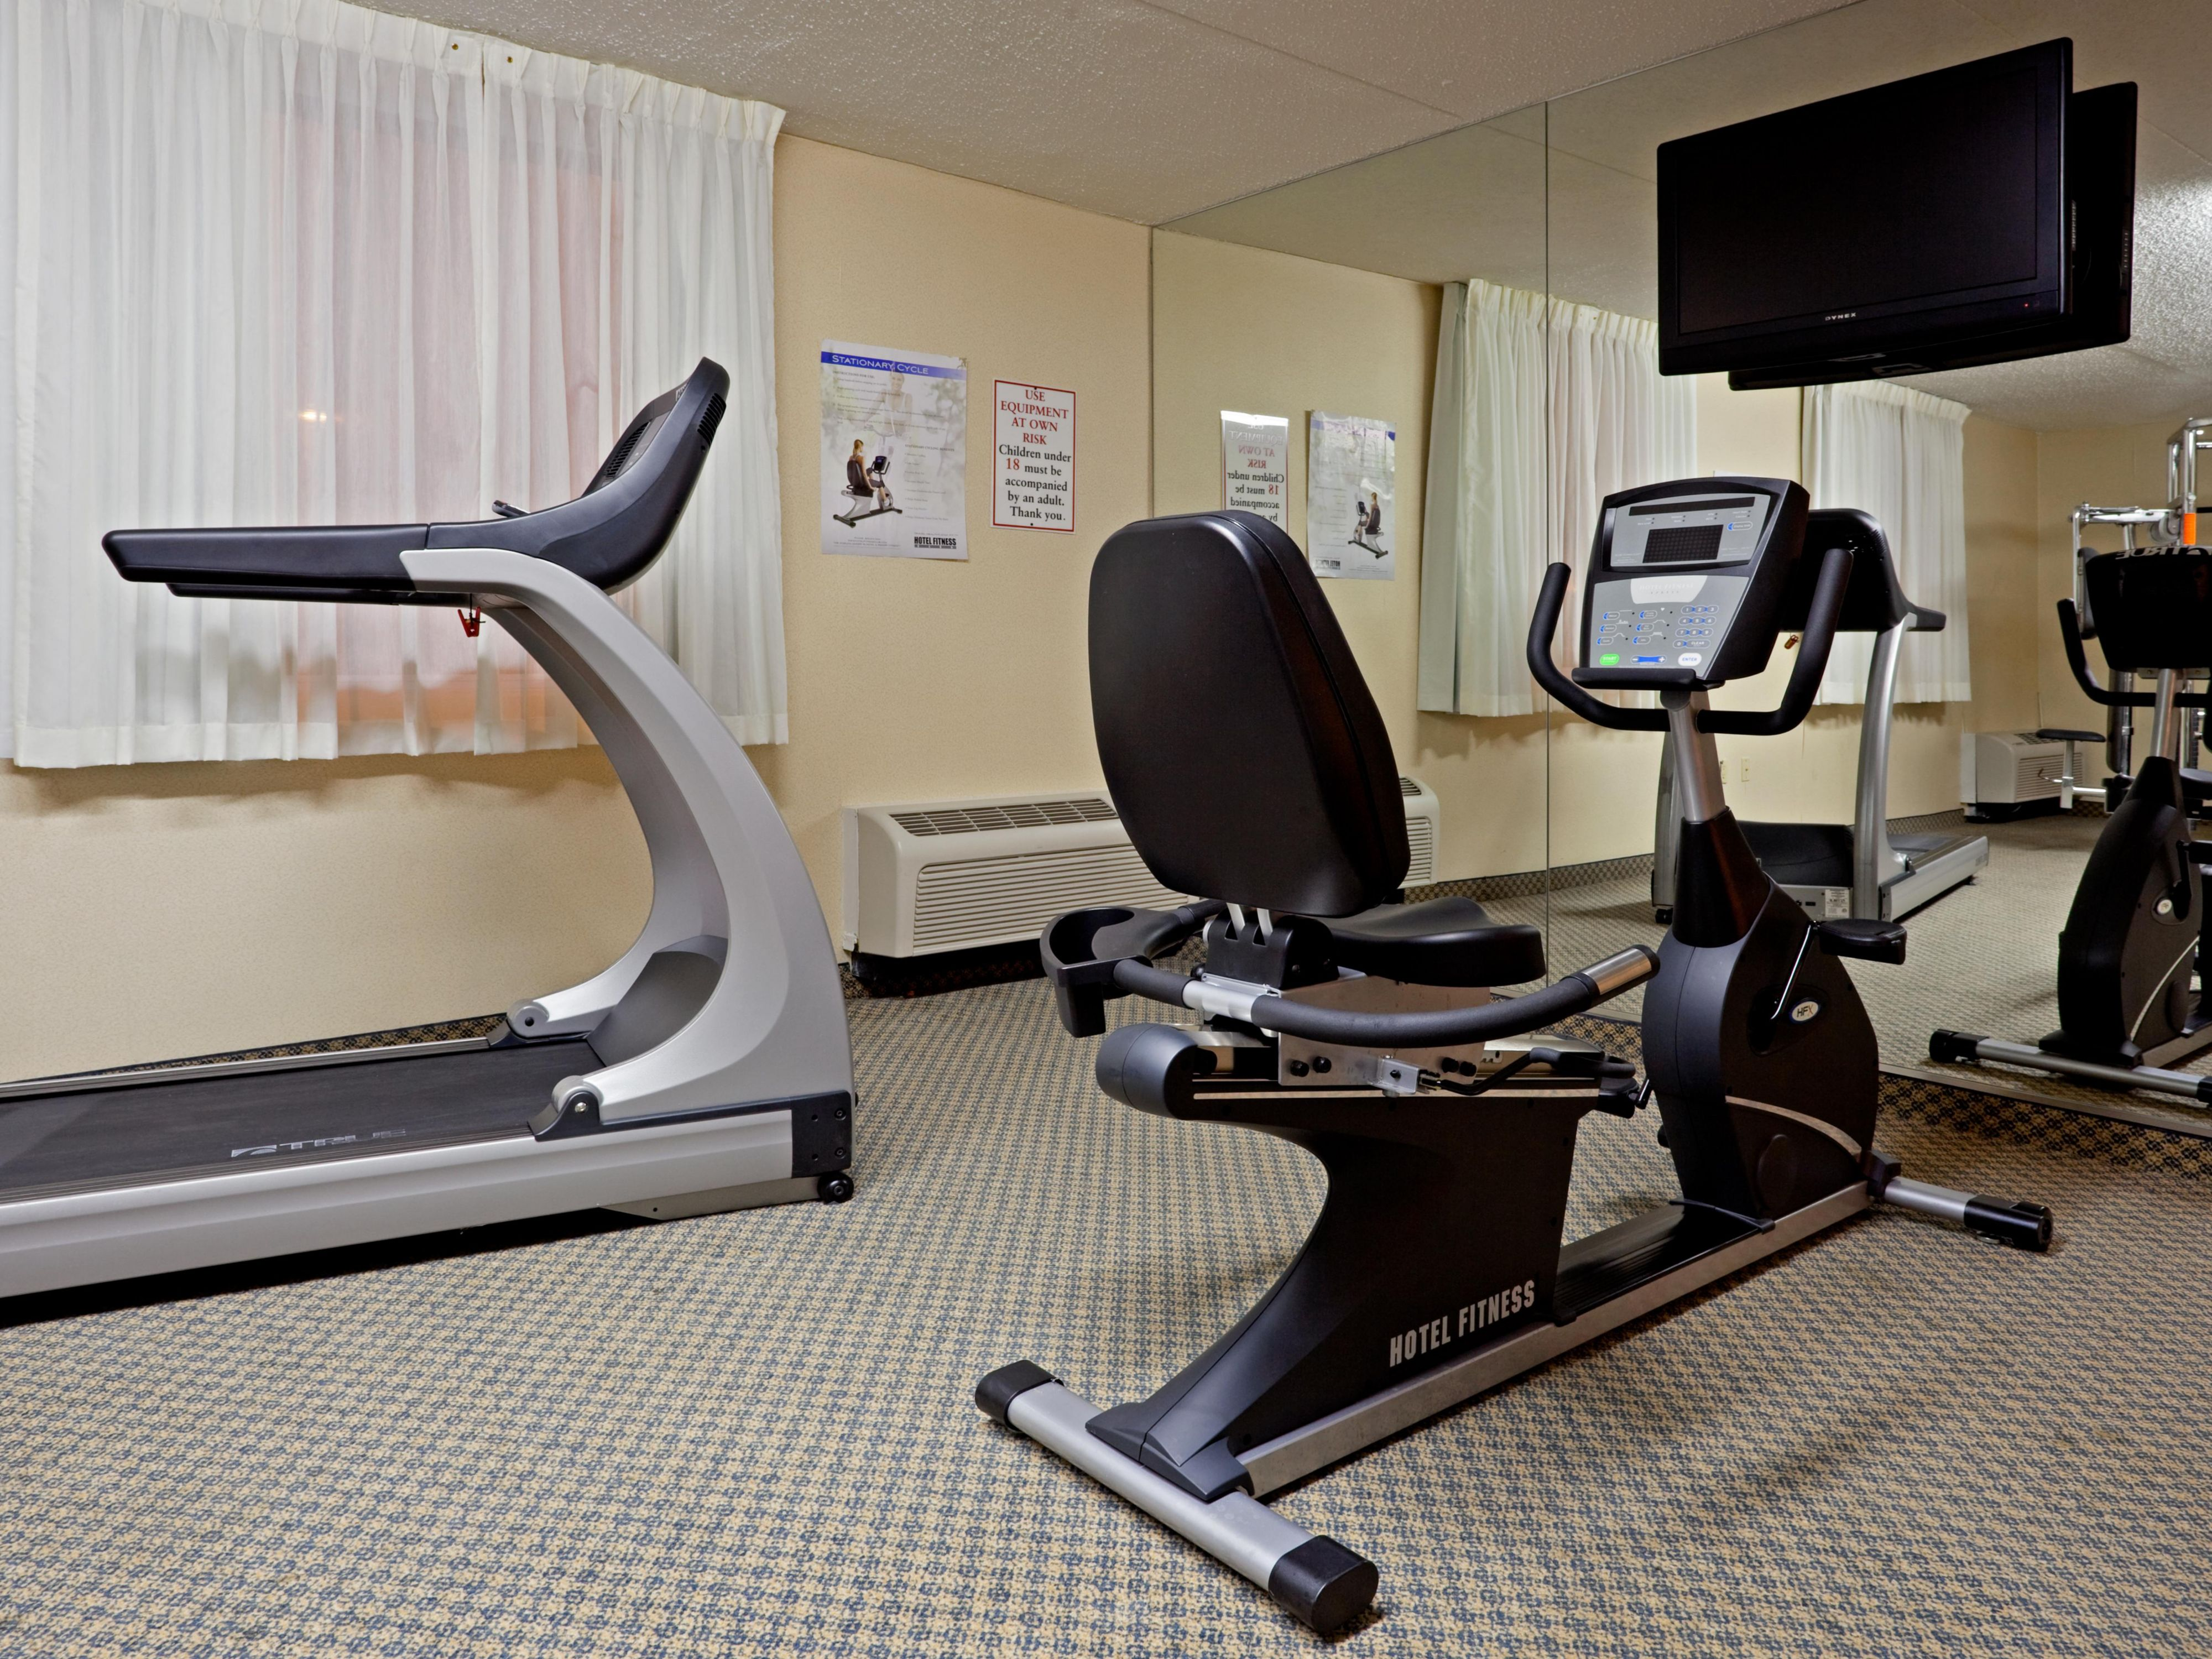 With a variety of fitness options our center is open 24hrs a day